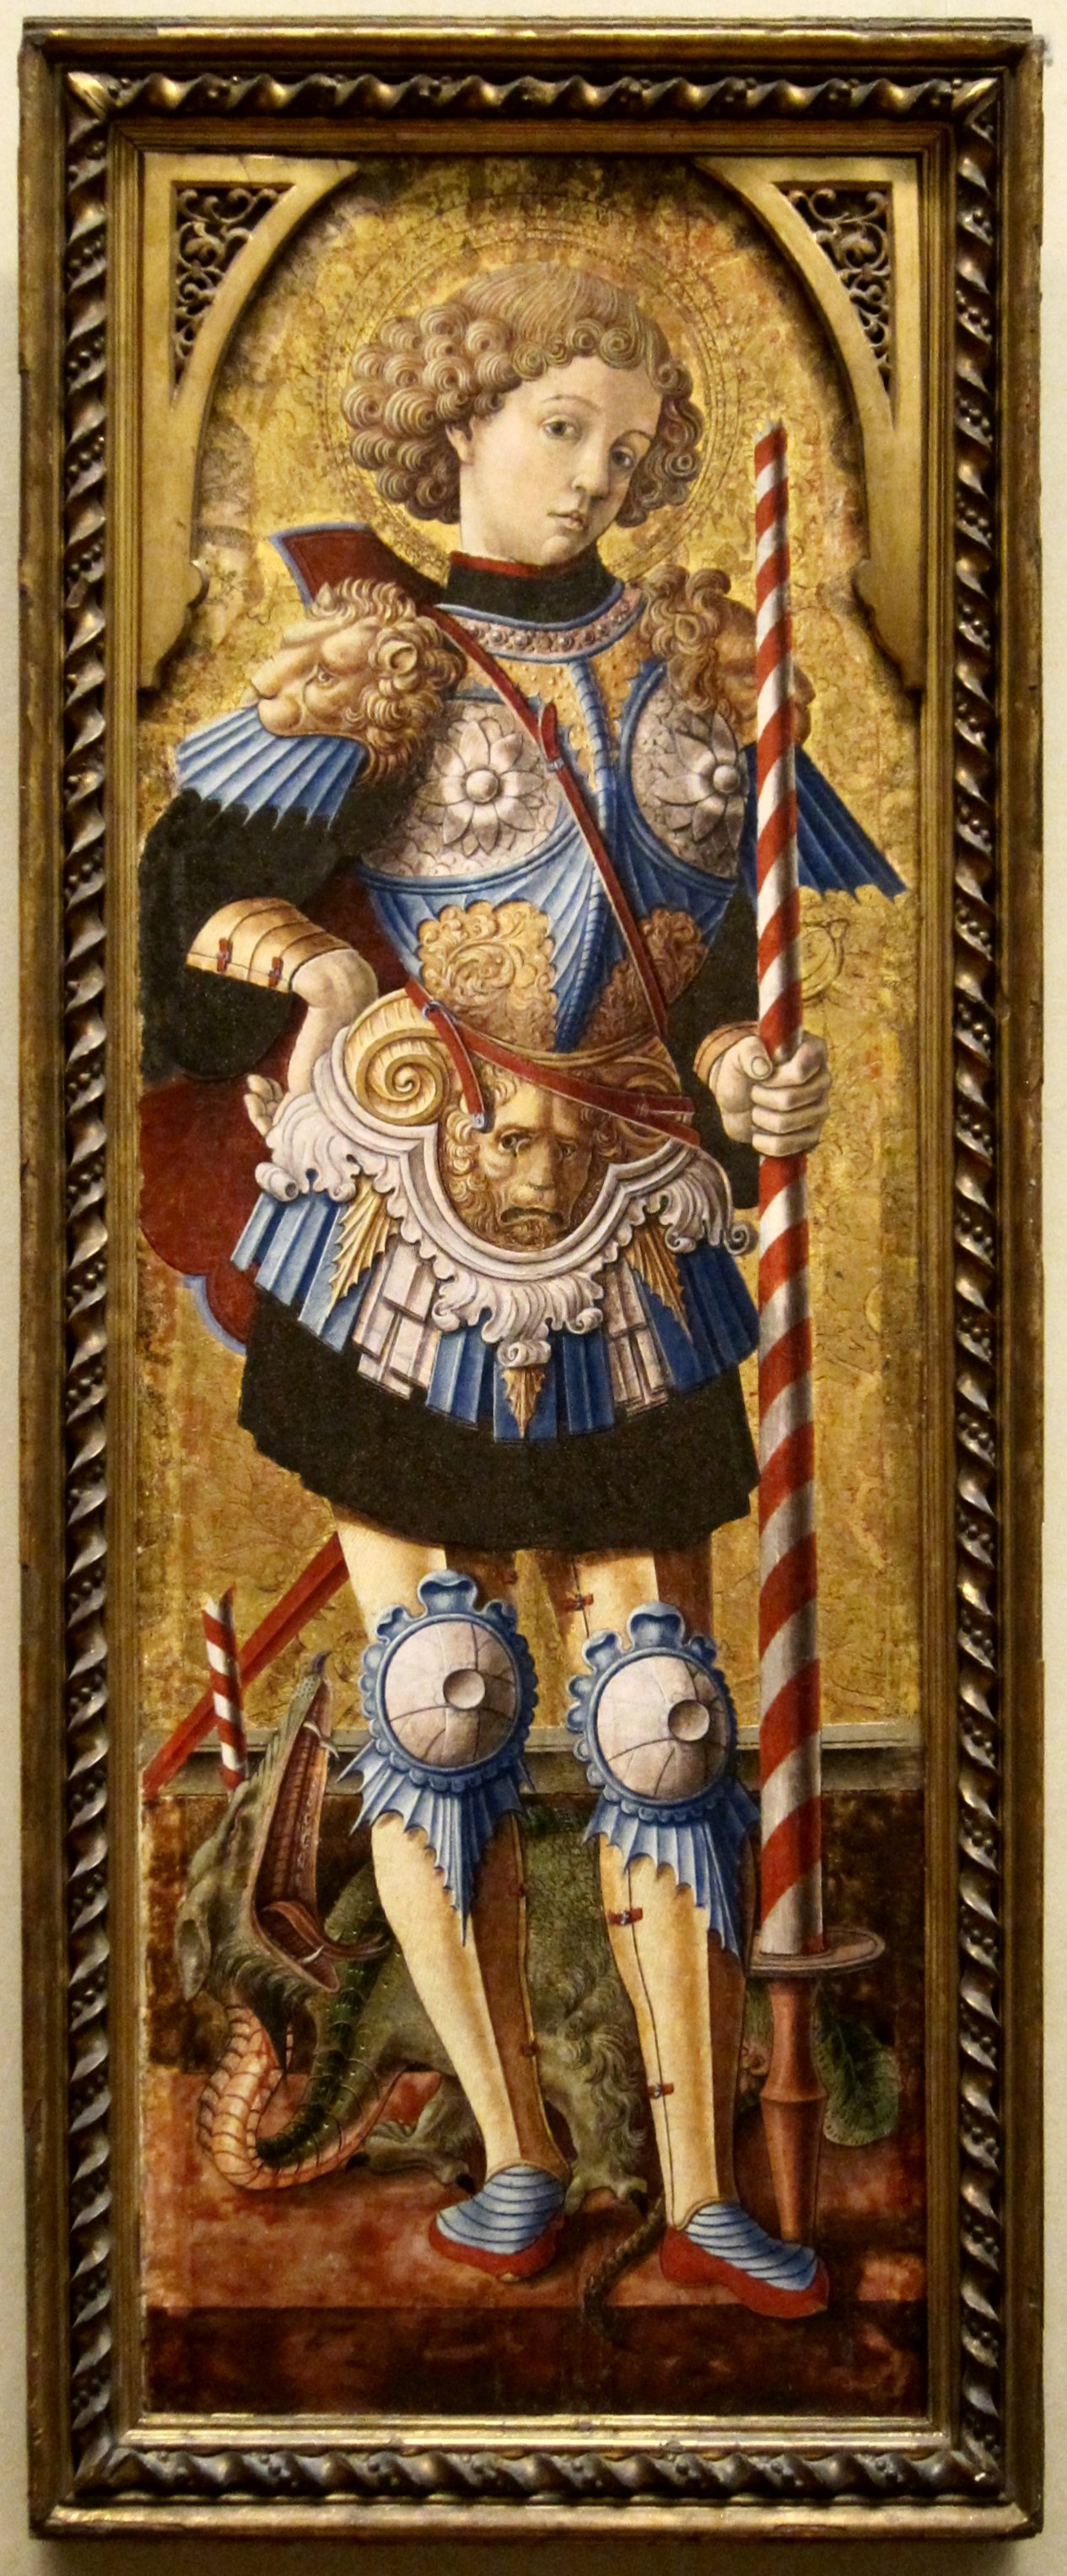 Saint George painting